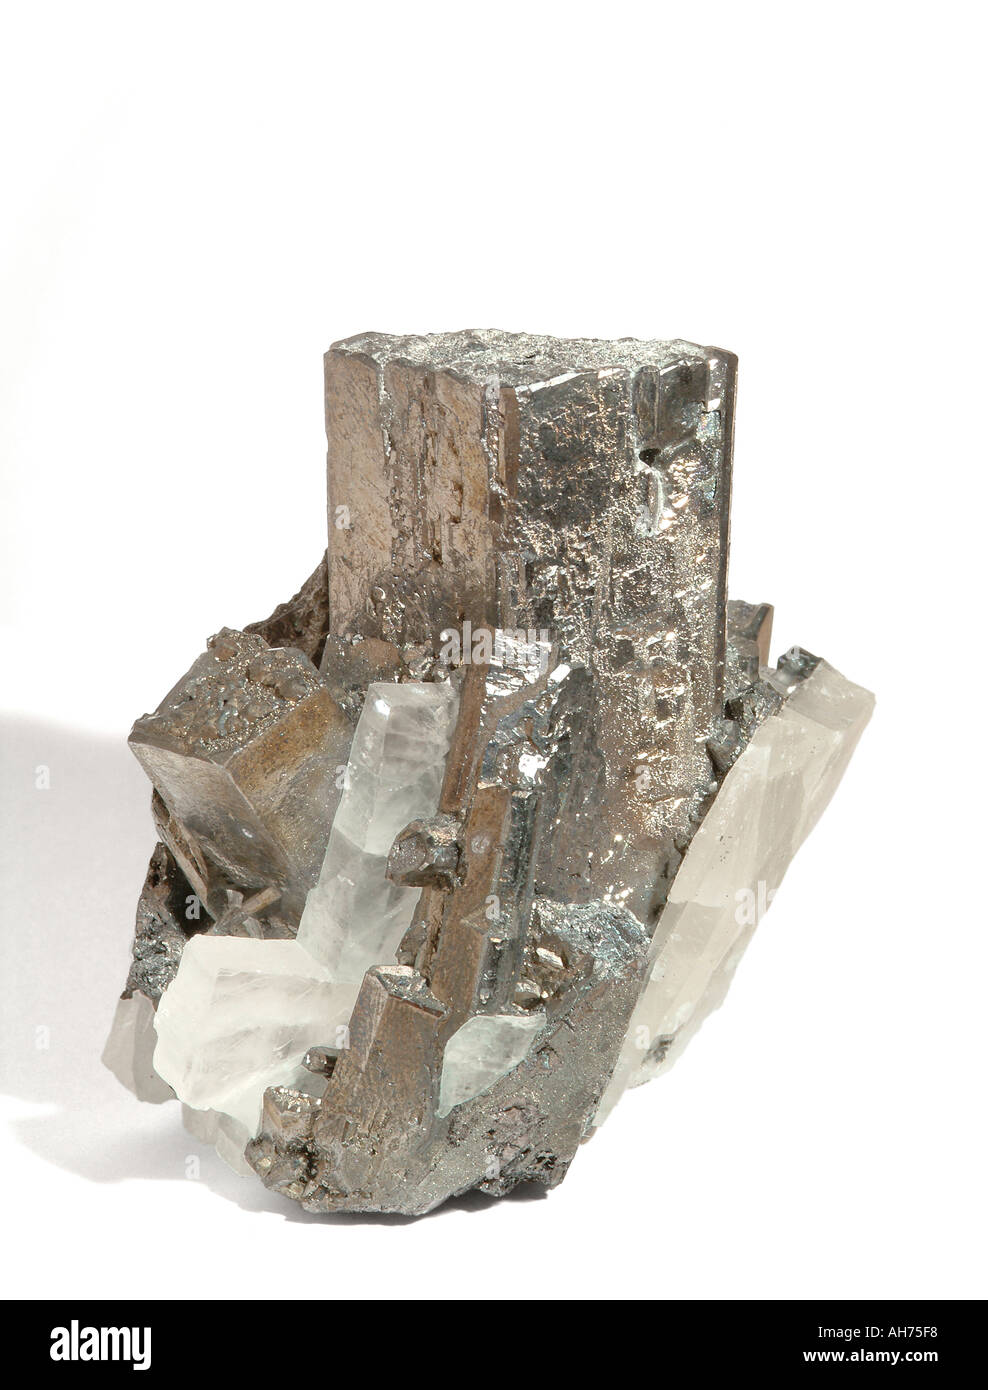 Mineral Tetrahedrite in cluster with colorless bladed crystalline barite Enargites replaced by silvery metallic Stock Photo